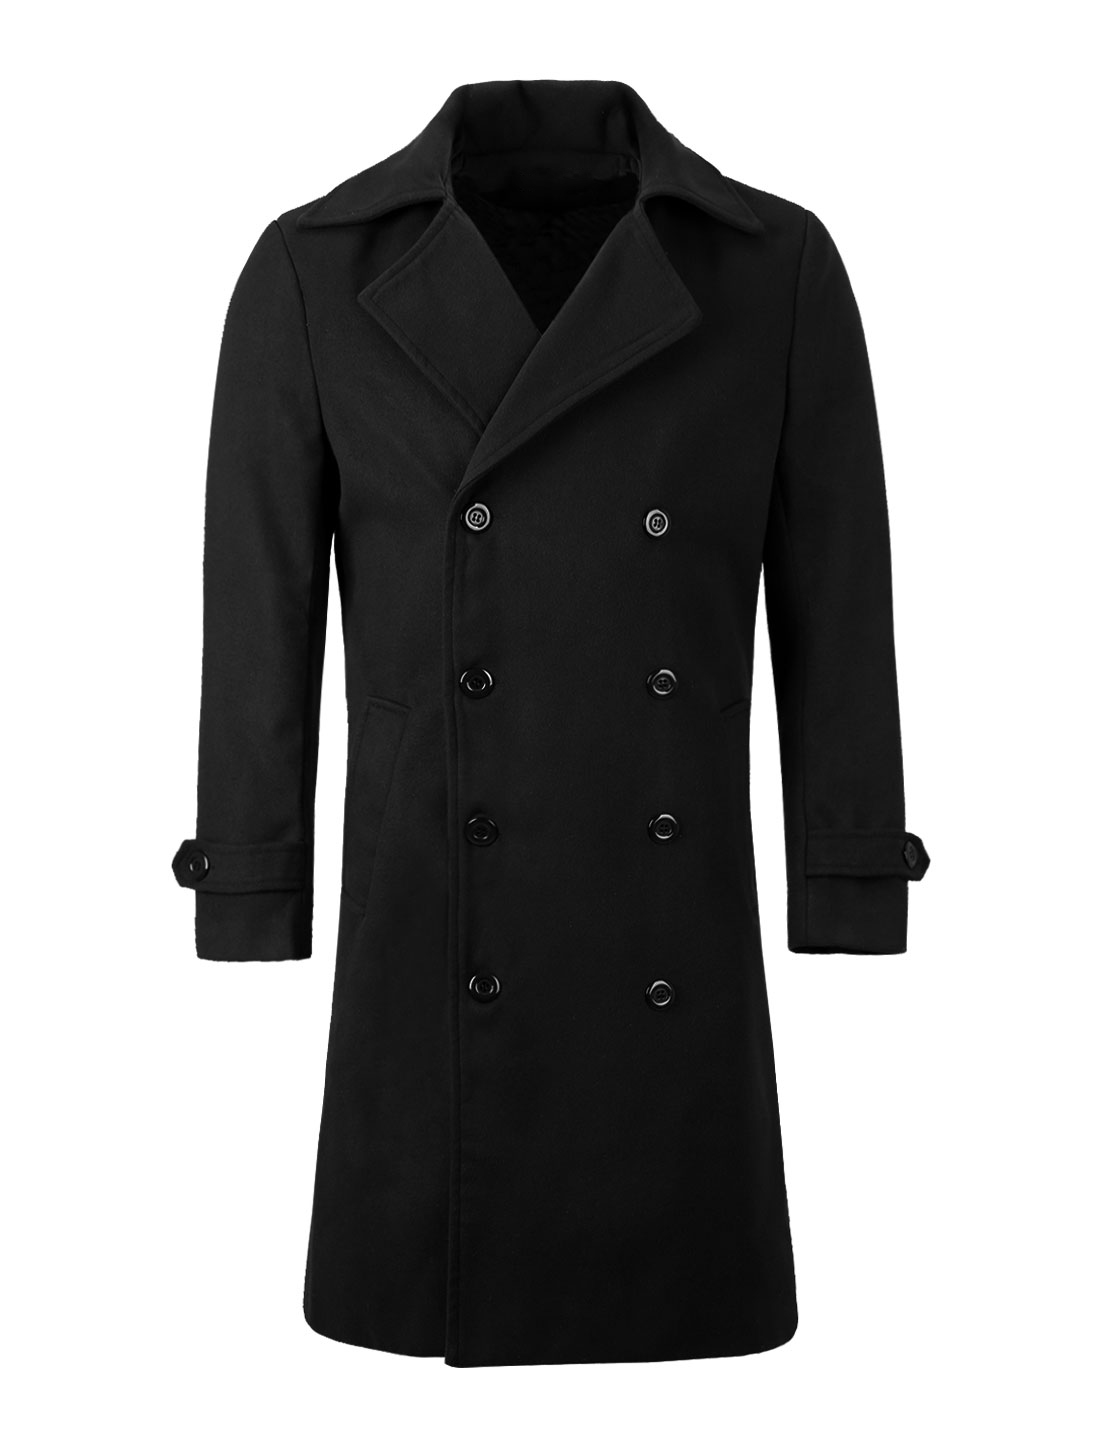 Men Convertible Collar Long Sleeve Overcoat Black M